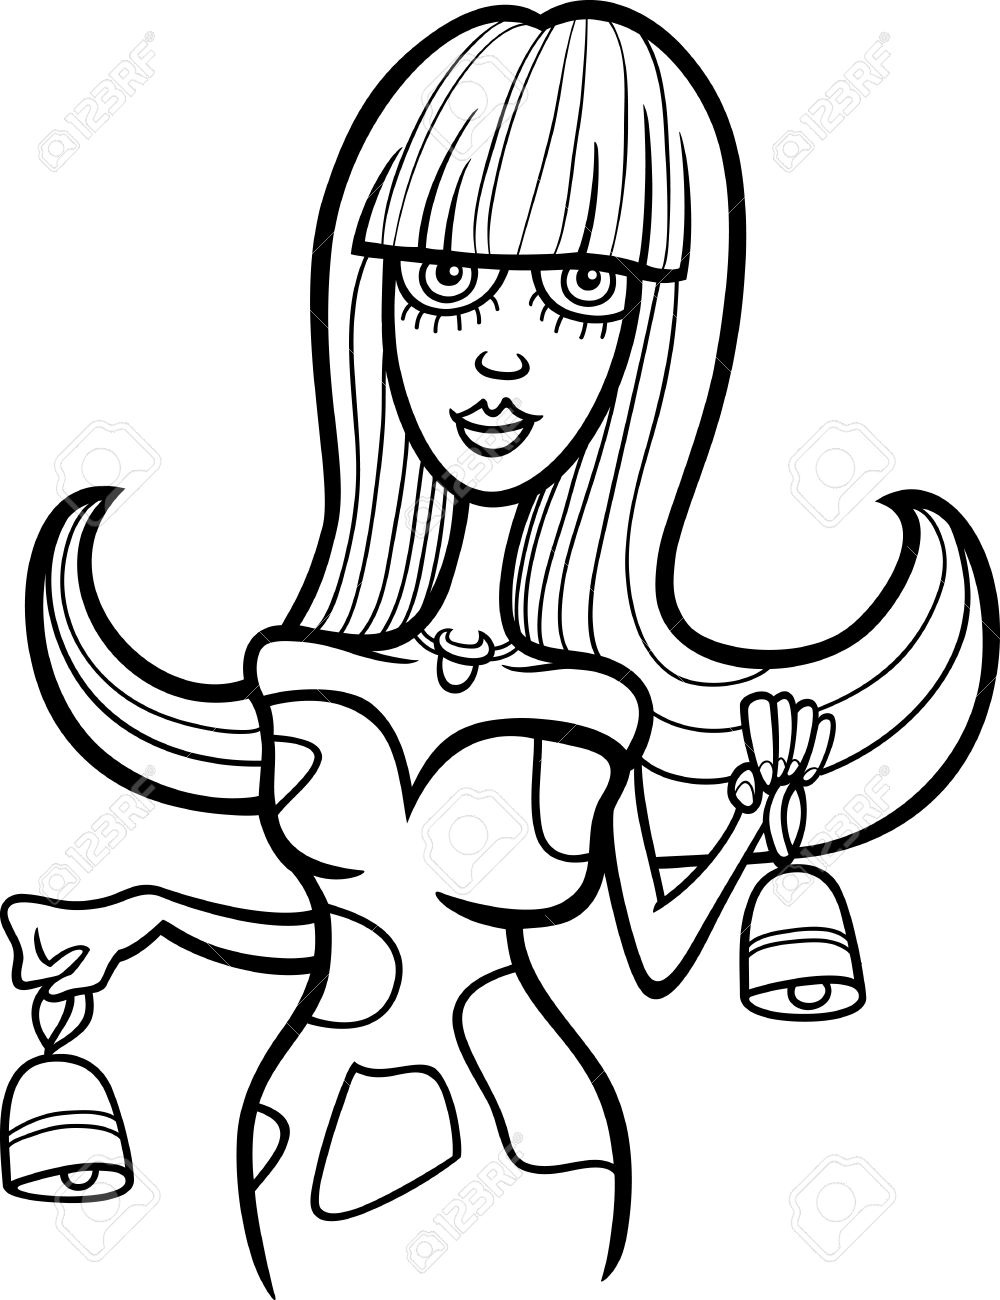 Illustration of Beautiful Woman Cartoon Character with Cow Bells or Taurus Horoscope Zodiac Sign for coloring Stock Vector - 15805599